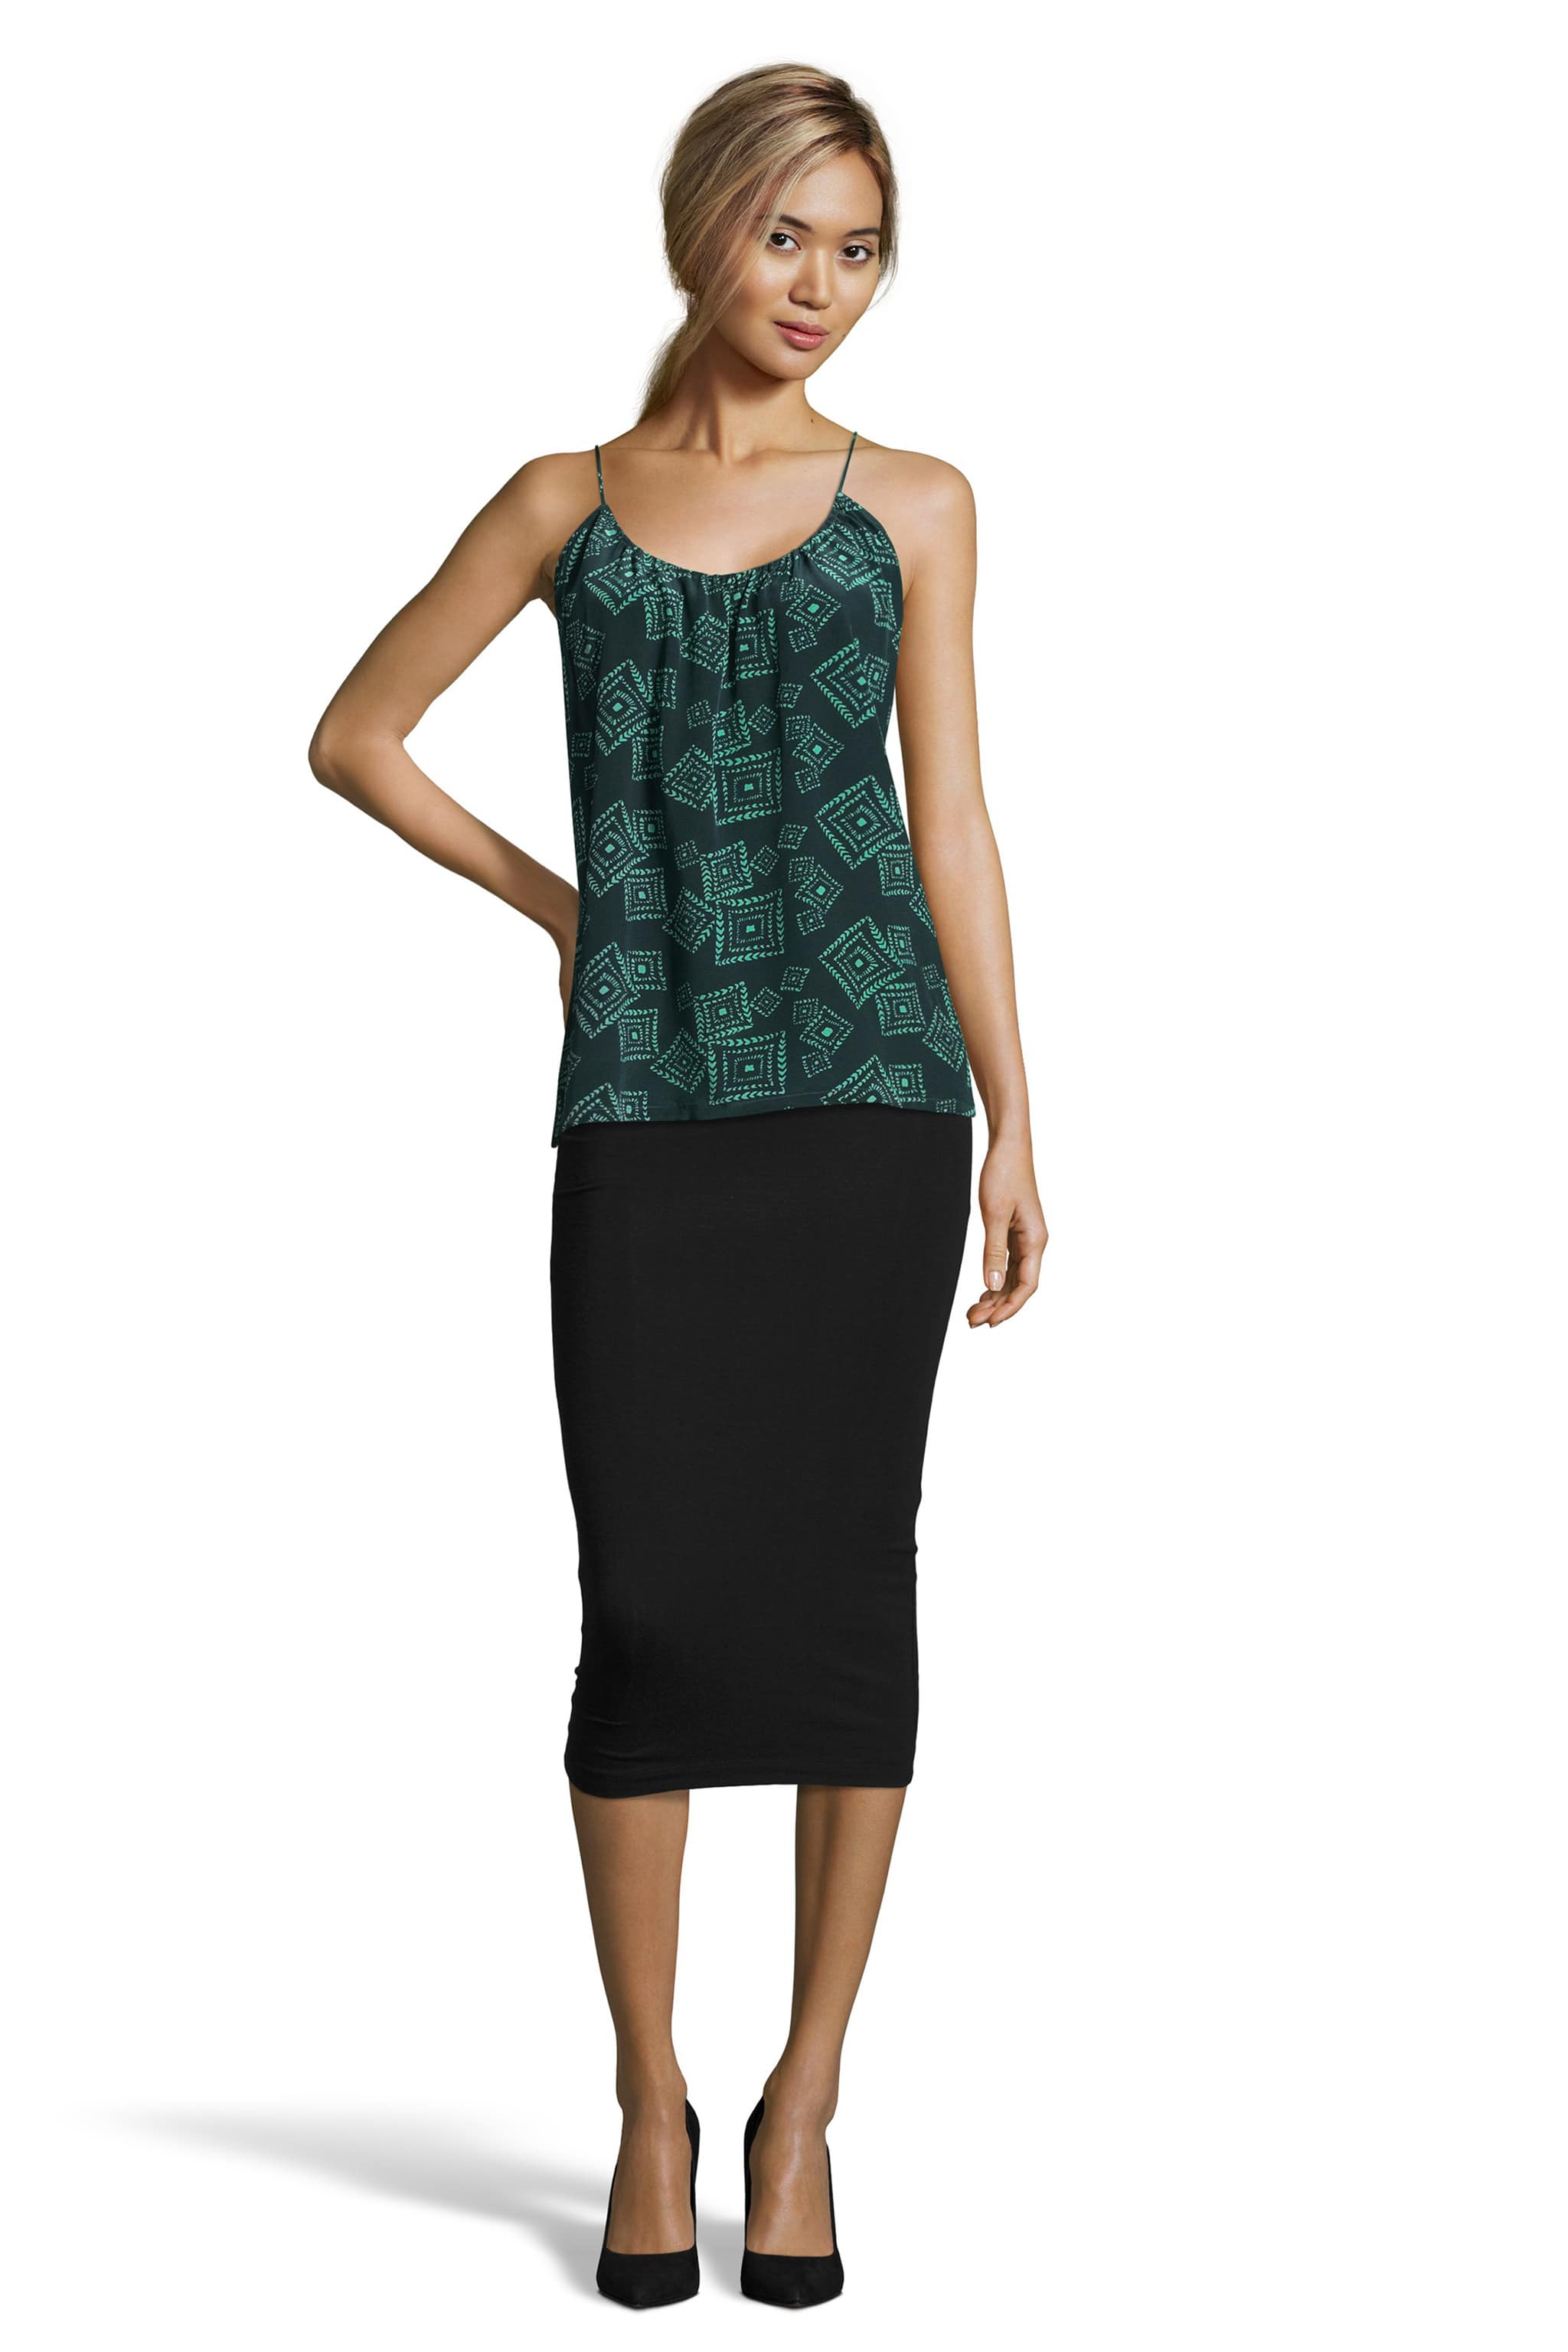 The Camisole | Green Tonal Diamond